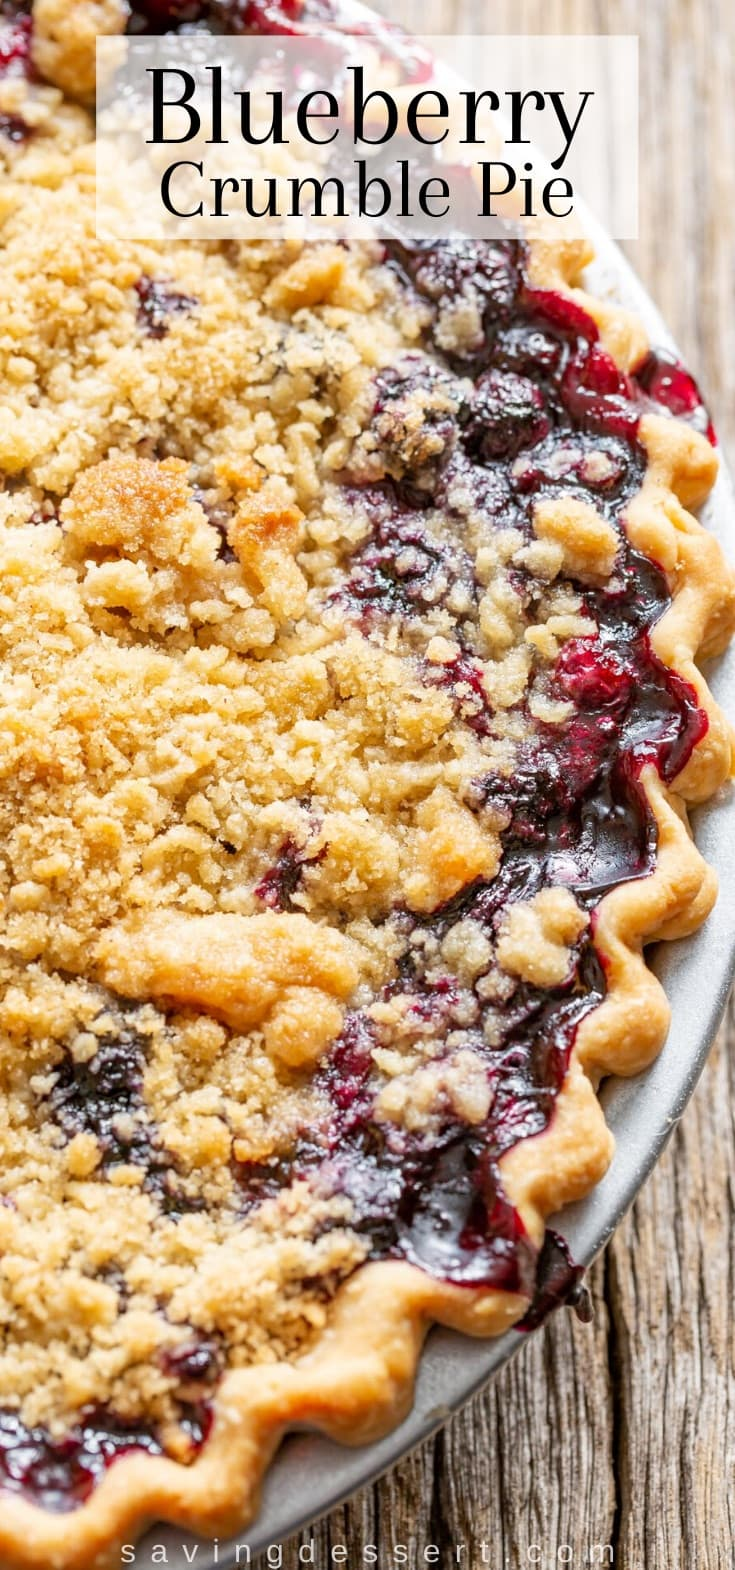 A closeup of a blueberry crumble pie